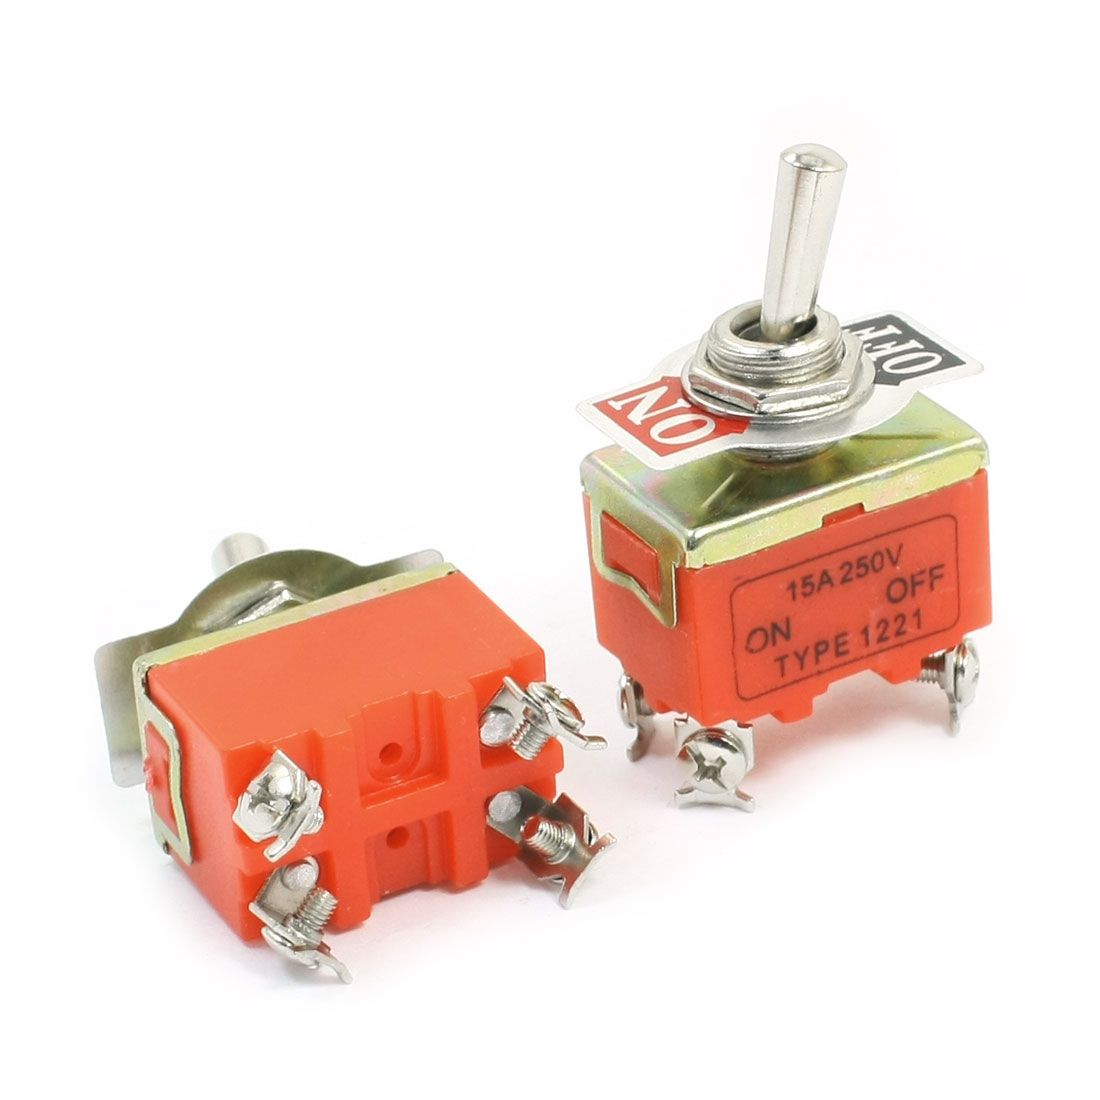 AC 250V 15A DPST ON-OFF 2 Positions Latching Toggle Switch E-TEN1221 2pcs